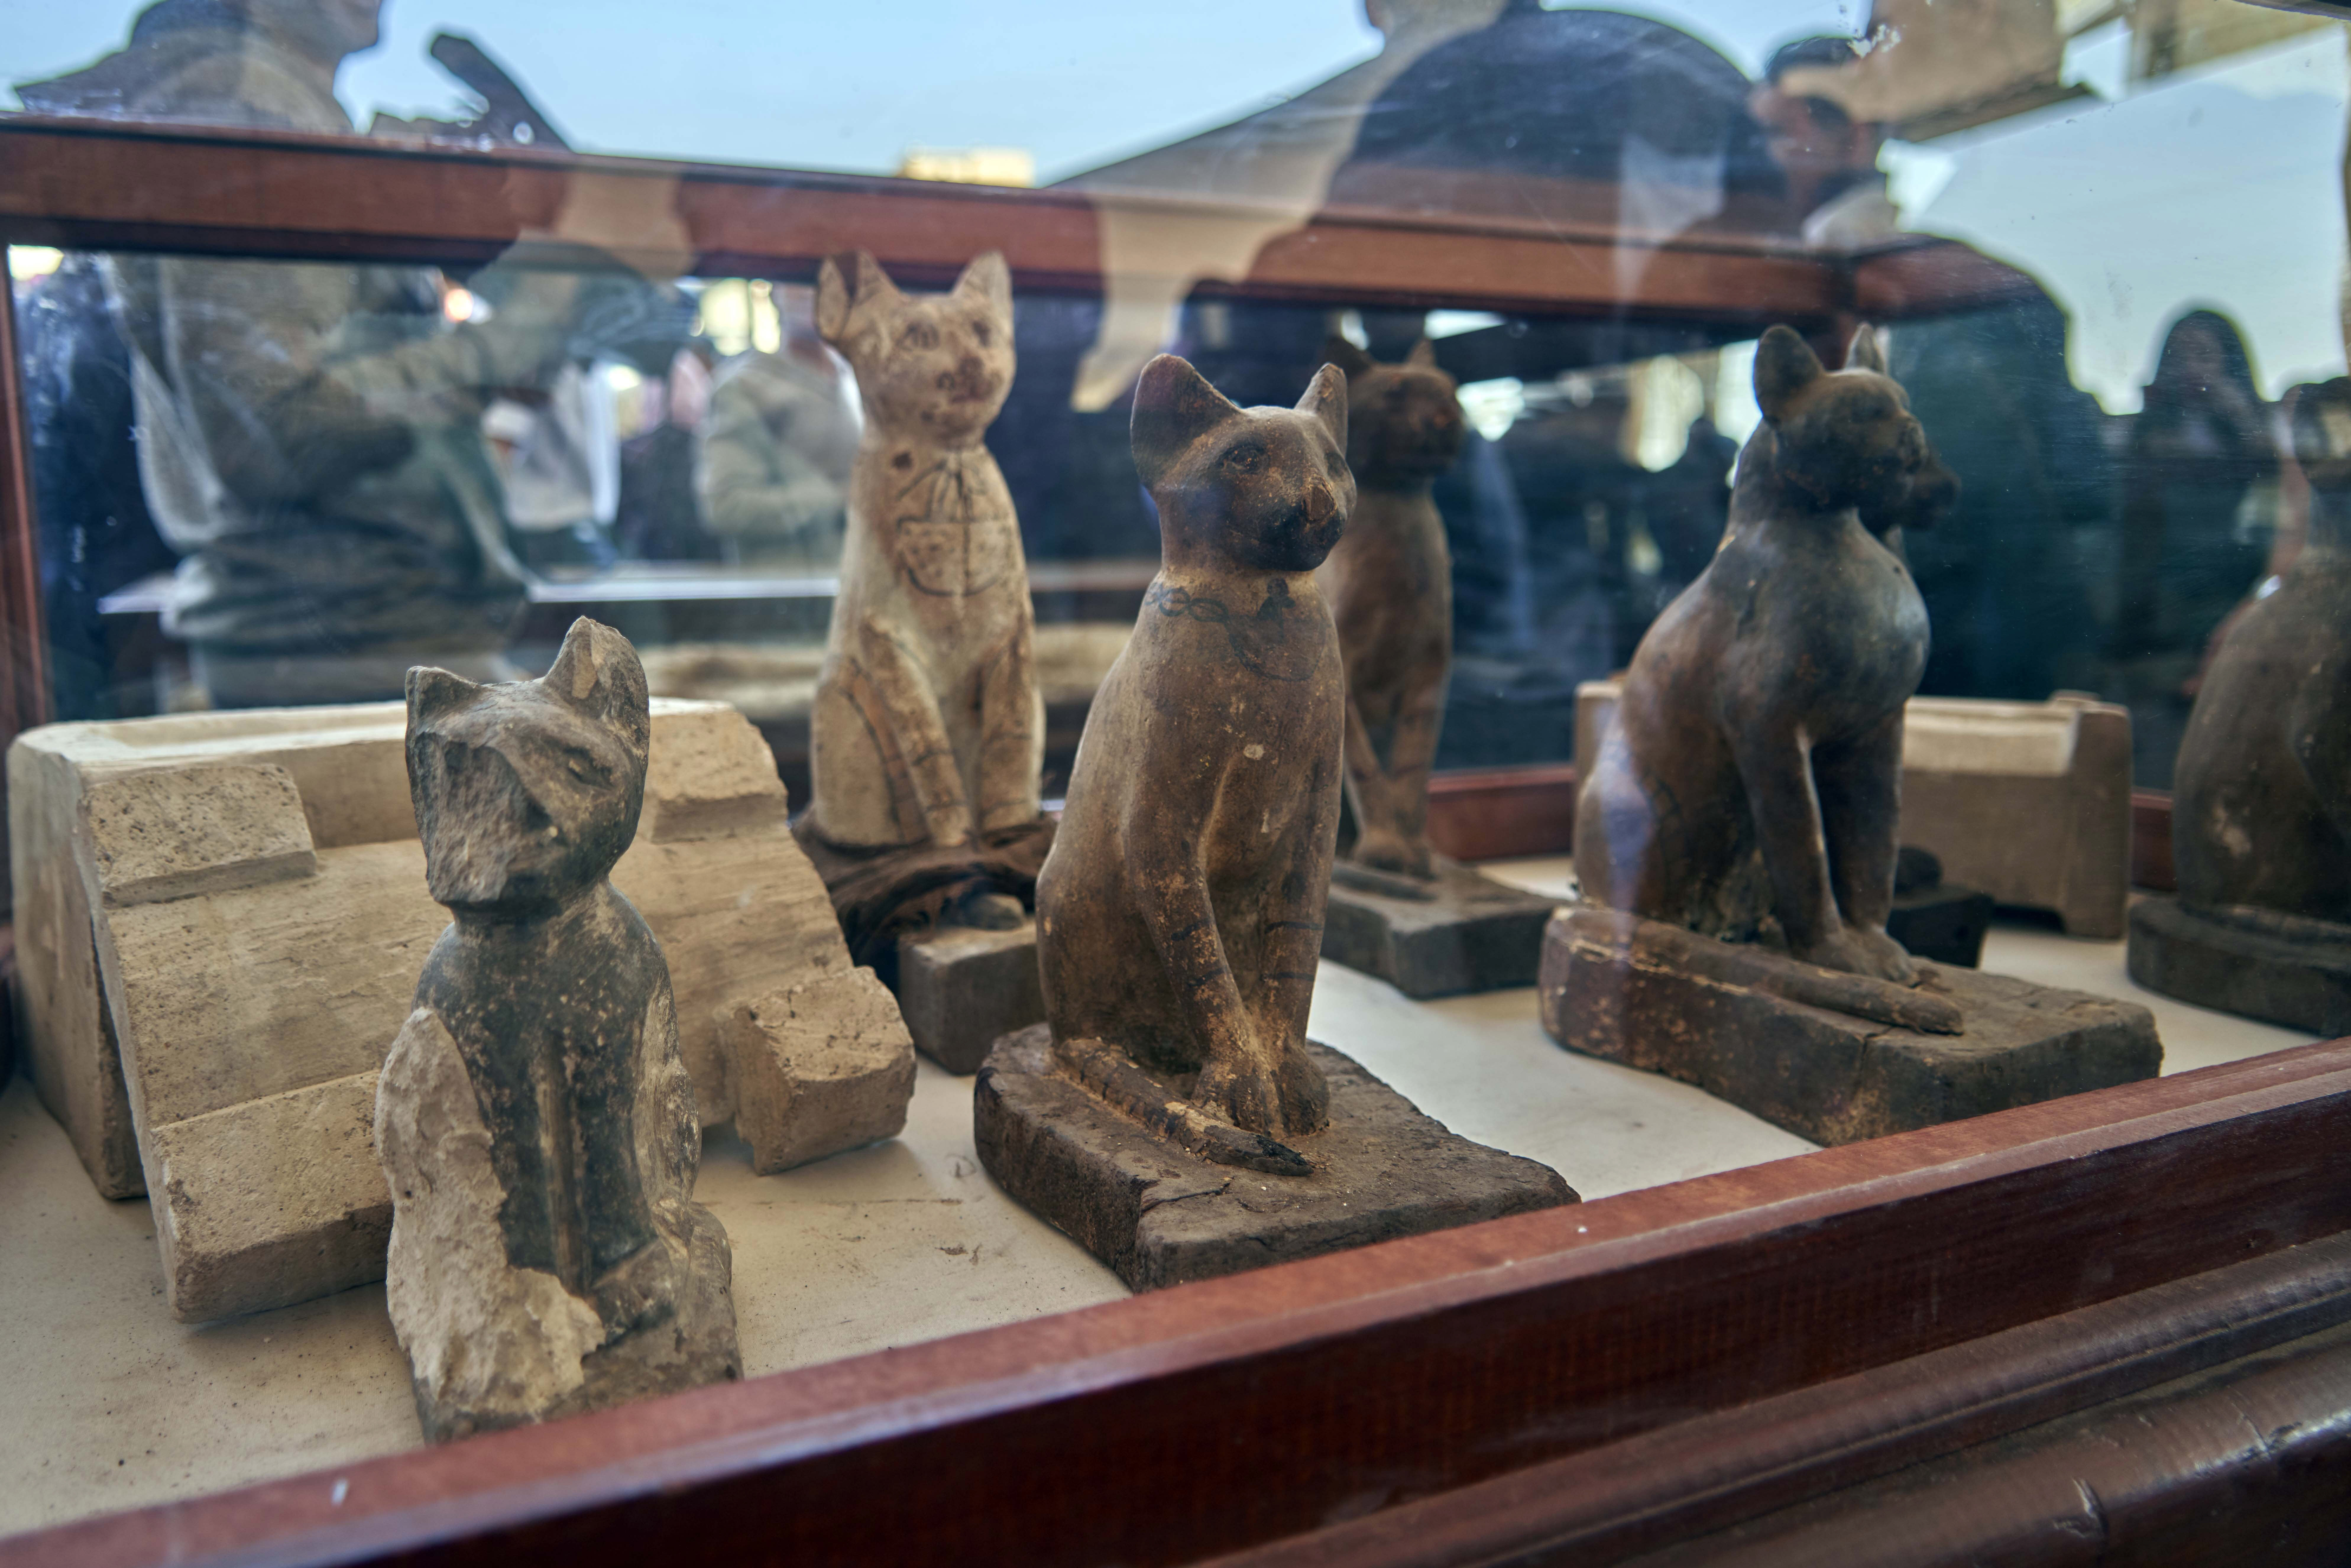 An extensive collection of 75 wooden and bronze statues of cats of different shapes and sizes are displayed in Saqqara, south Giza, Egypt. Saturday, Nov. 23, 2019. Egypt's Ministry of Antiquities revealed details on recently discovered animal mummies, saying they include two lion cubs as well as several crocodiles, birds and cats. The new discovery was displayed at a makeshift exhibition at the famed Step Pyramid of Djoser in Saqqara, south of Cairo, near the mummies and other artifacts were found in a vast necropolis. (AP Photo/Hamada Elrasam)